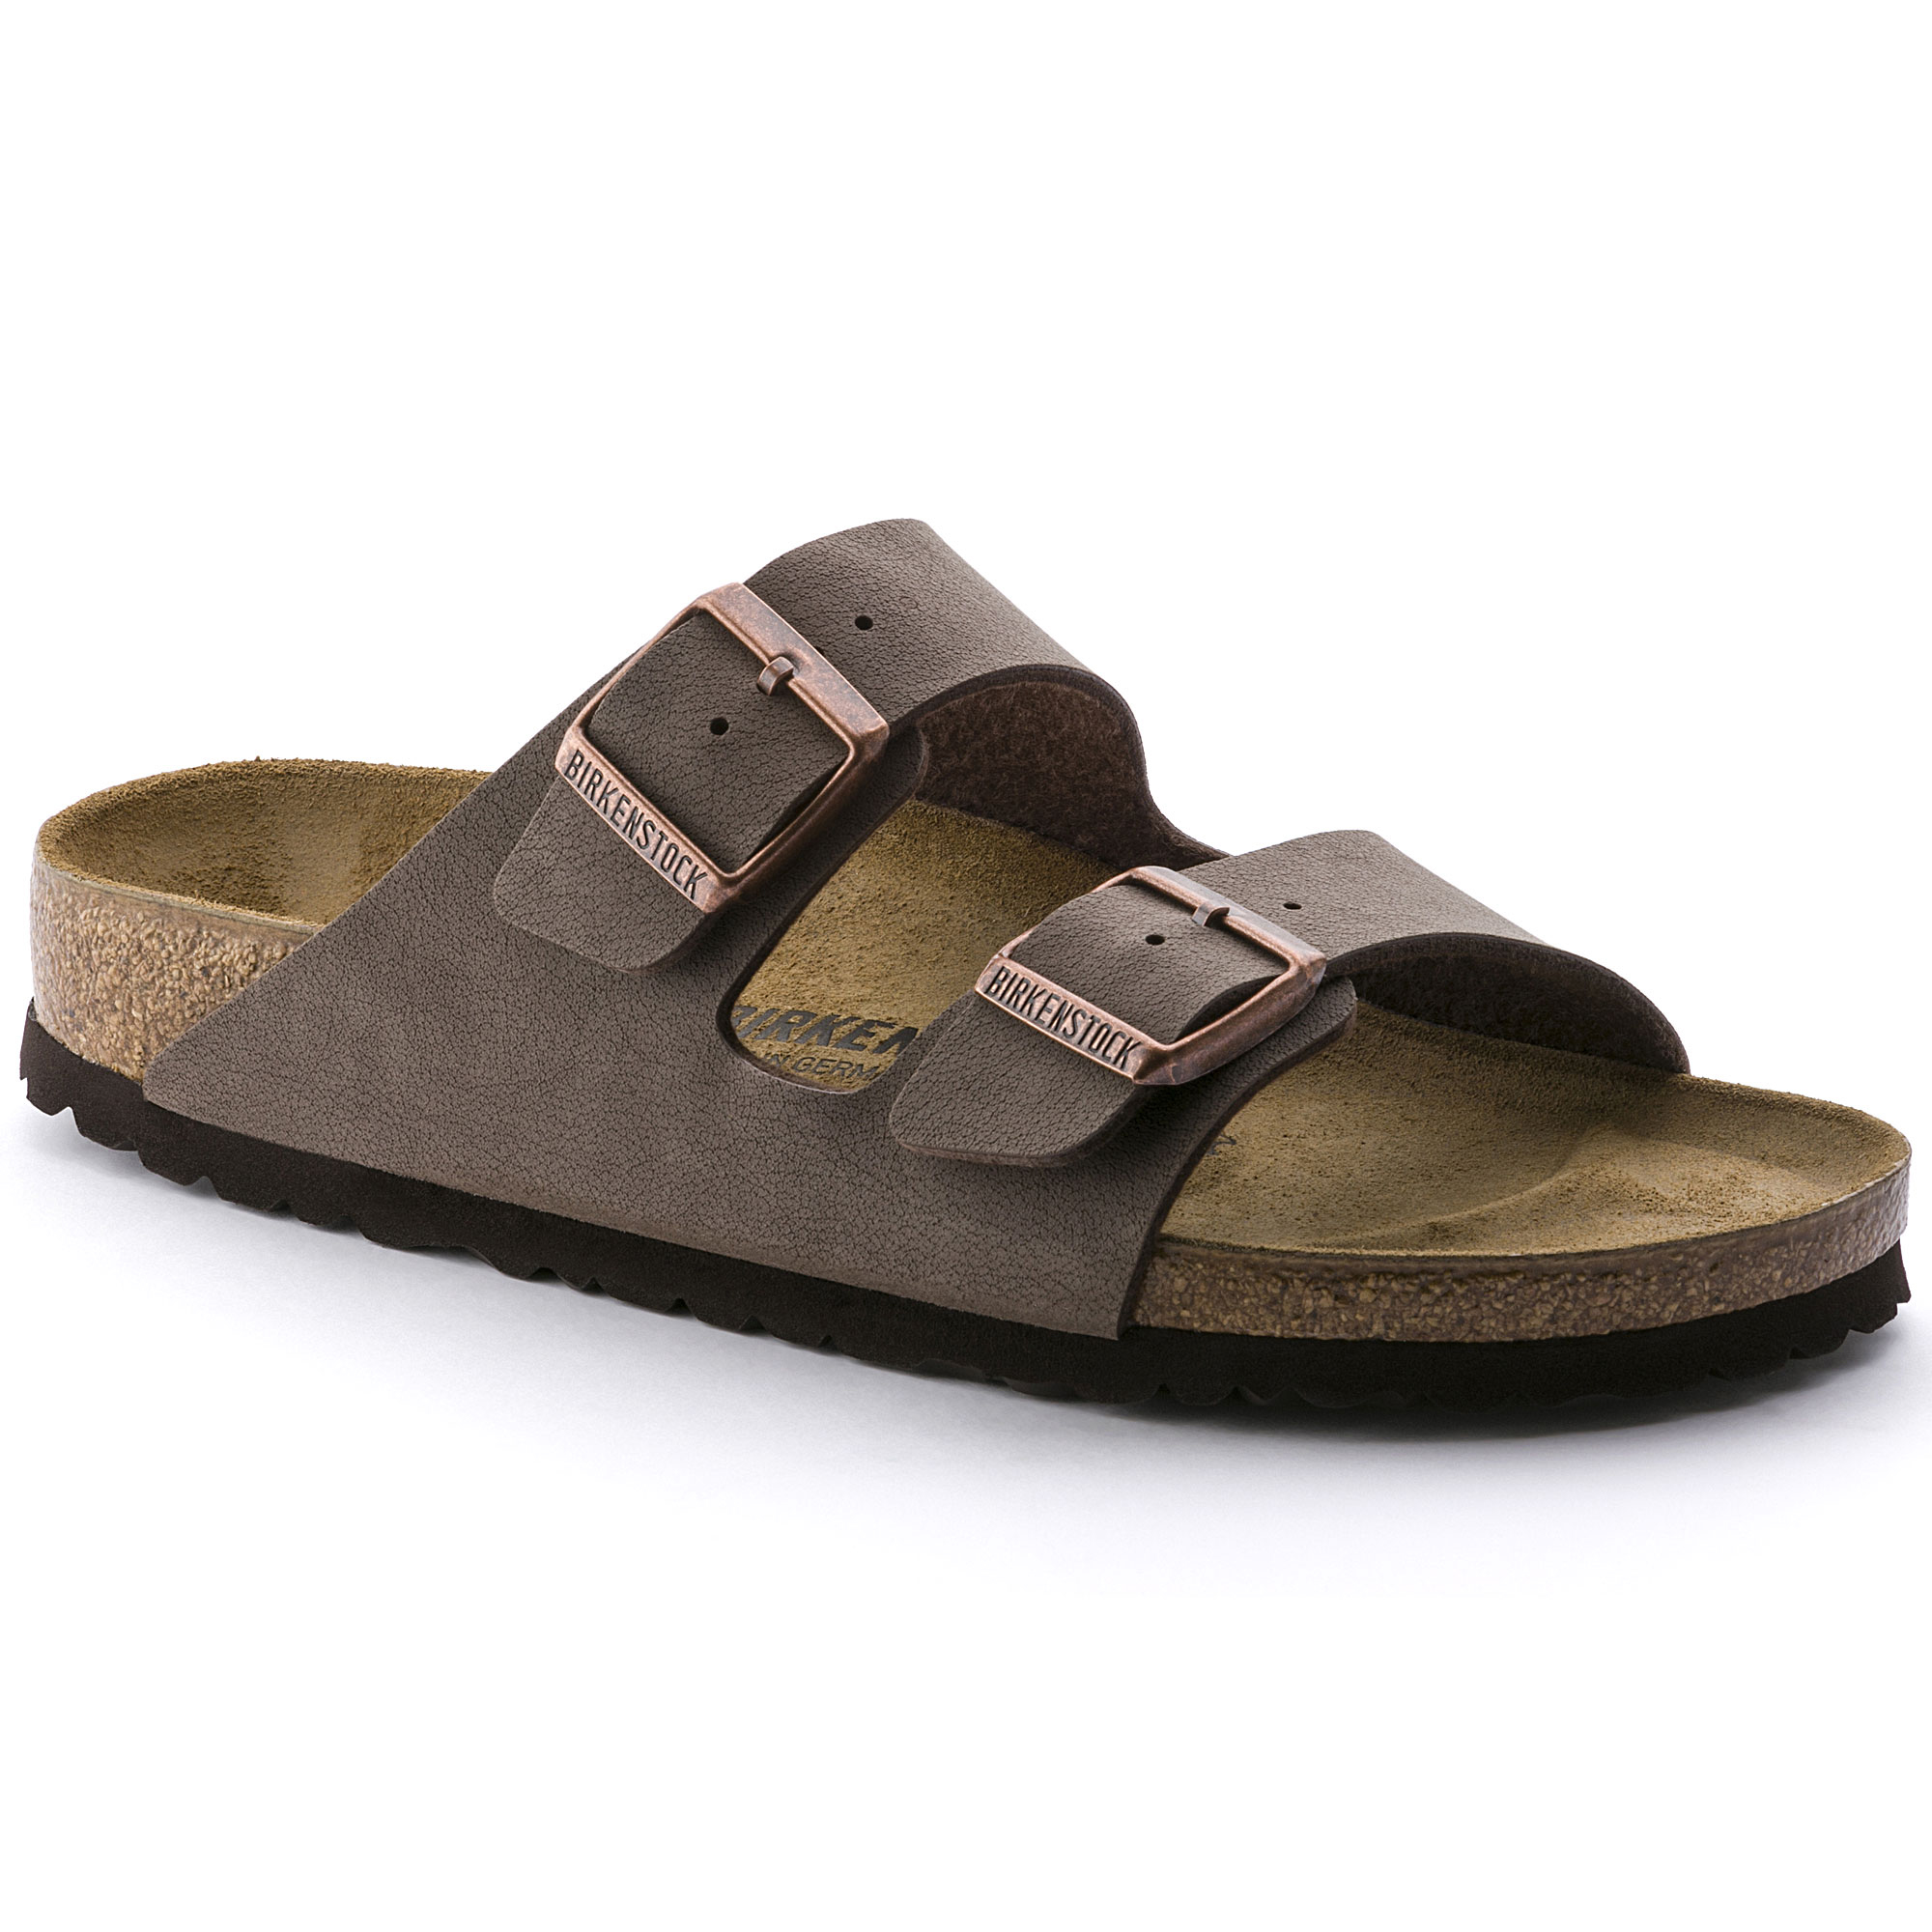 8add022da7ea Arizona Birko-Flor Nubuck Mocca ...